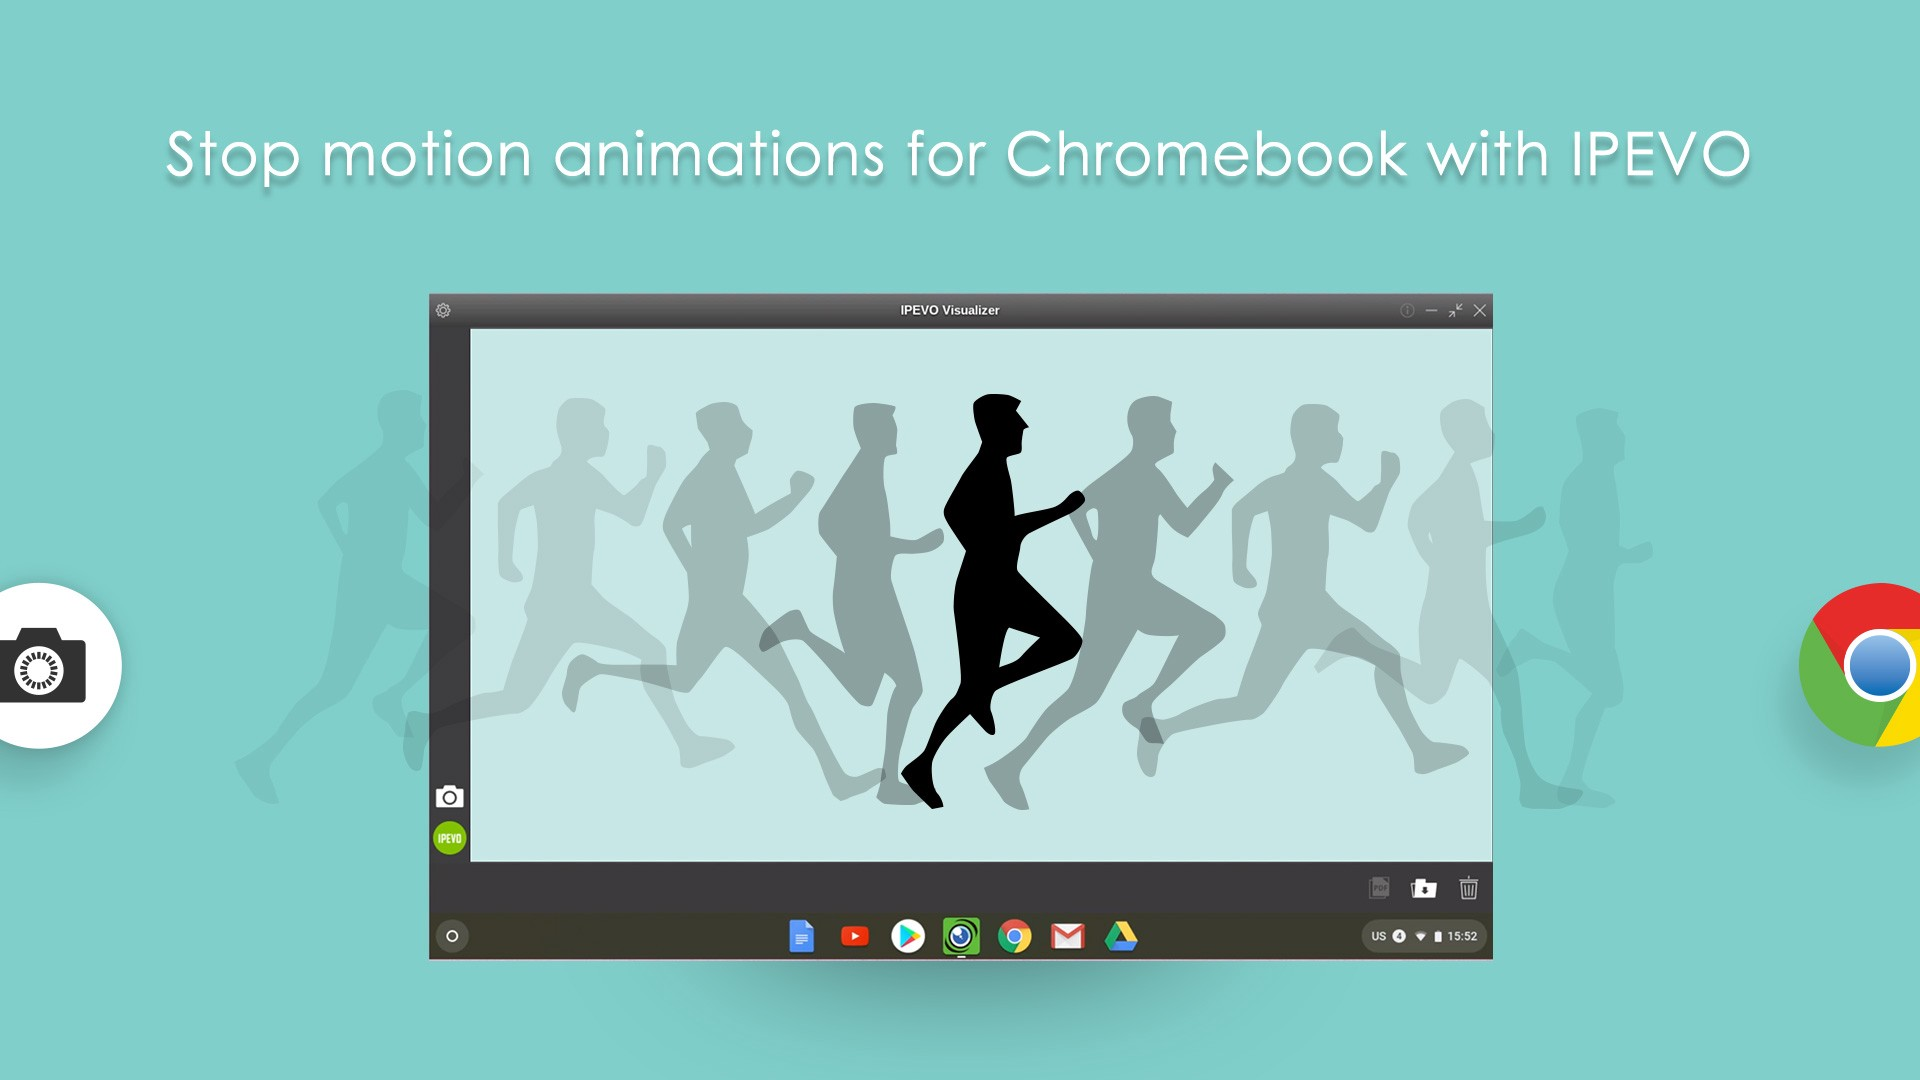 IPEVO Visualizer for Chromebook — Making stop motion animations